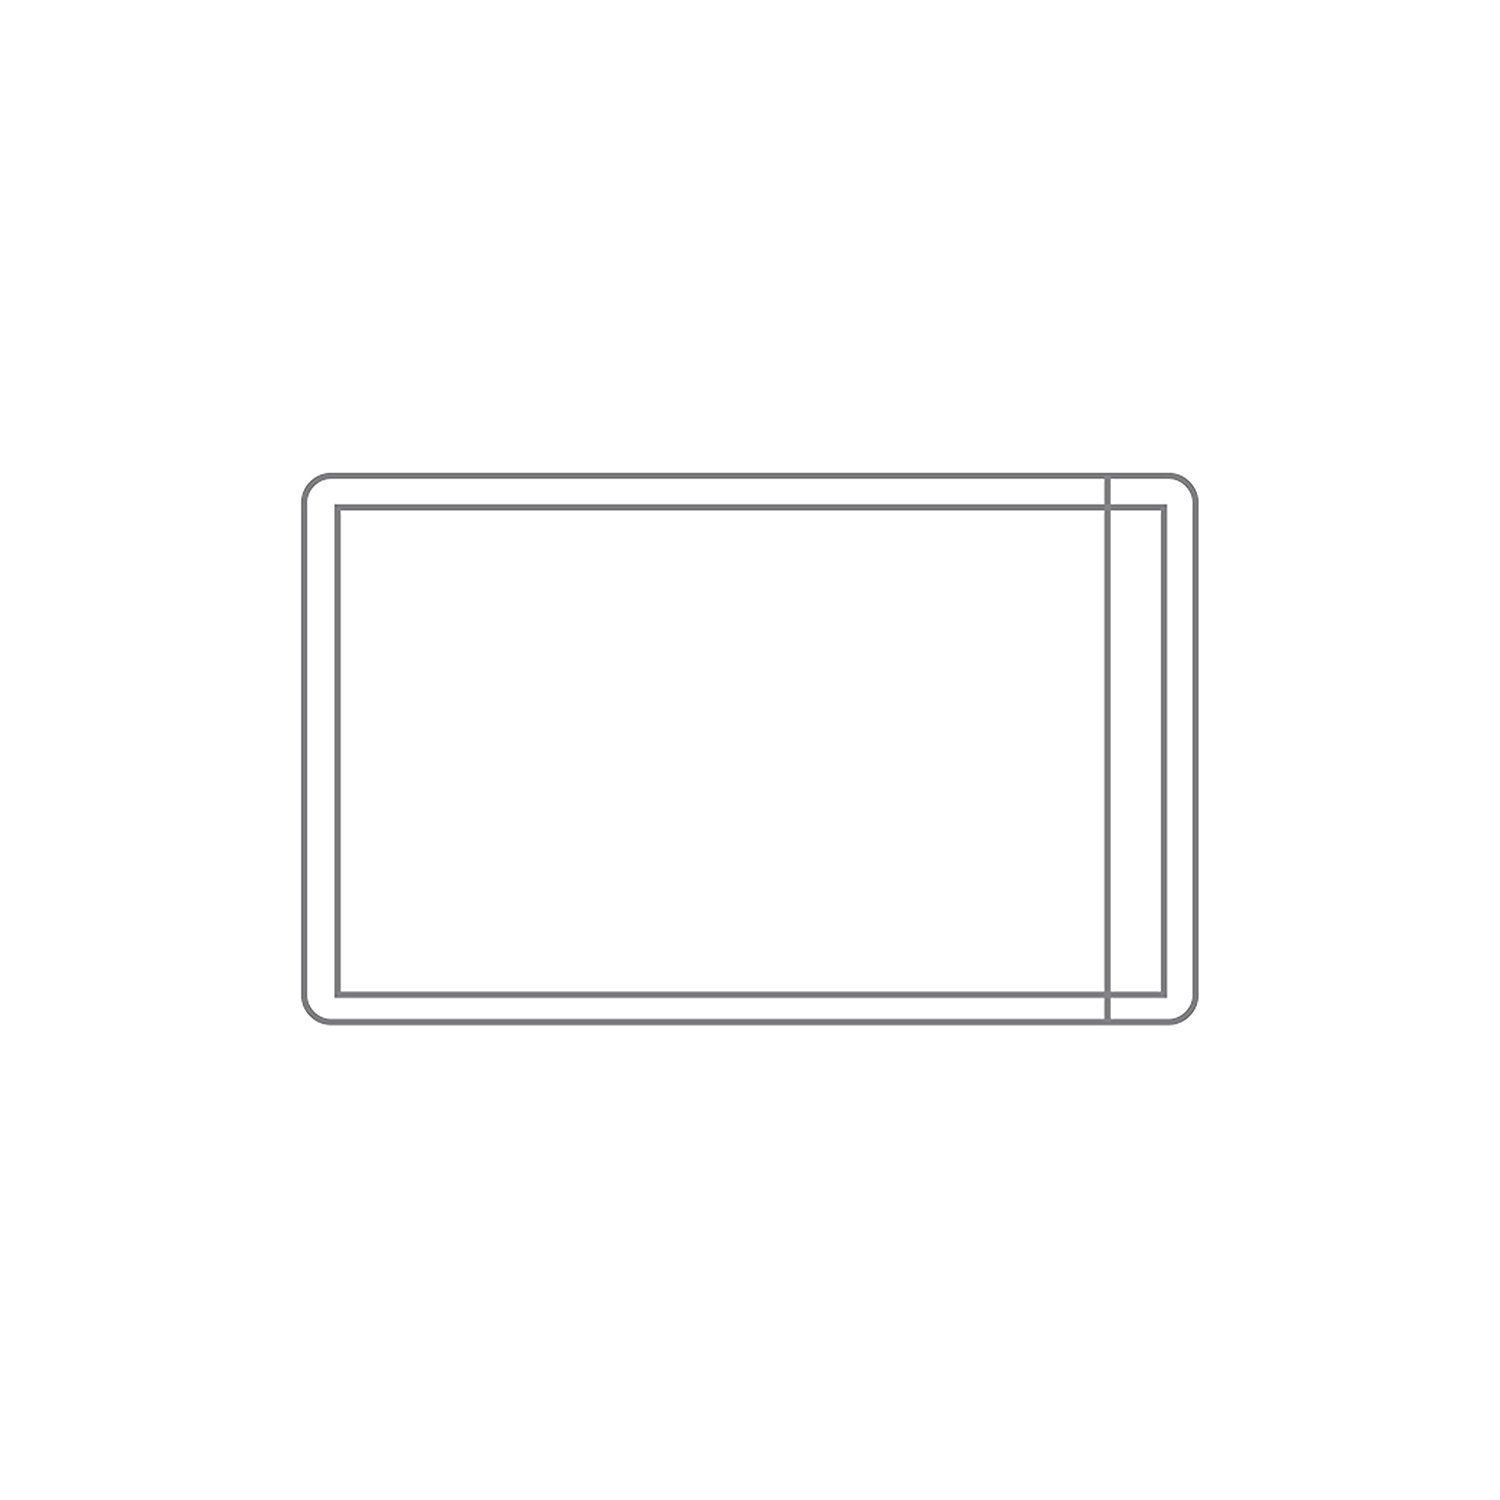 PackZen Clear Self-Adhesive Business Card Holder/Pocket (open on the short side) - Pack of 100 - Made in the USA